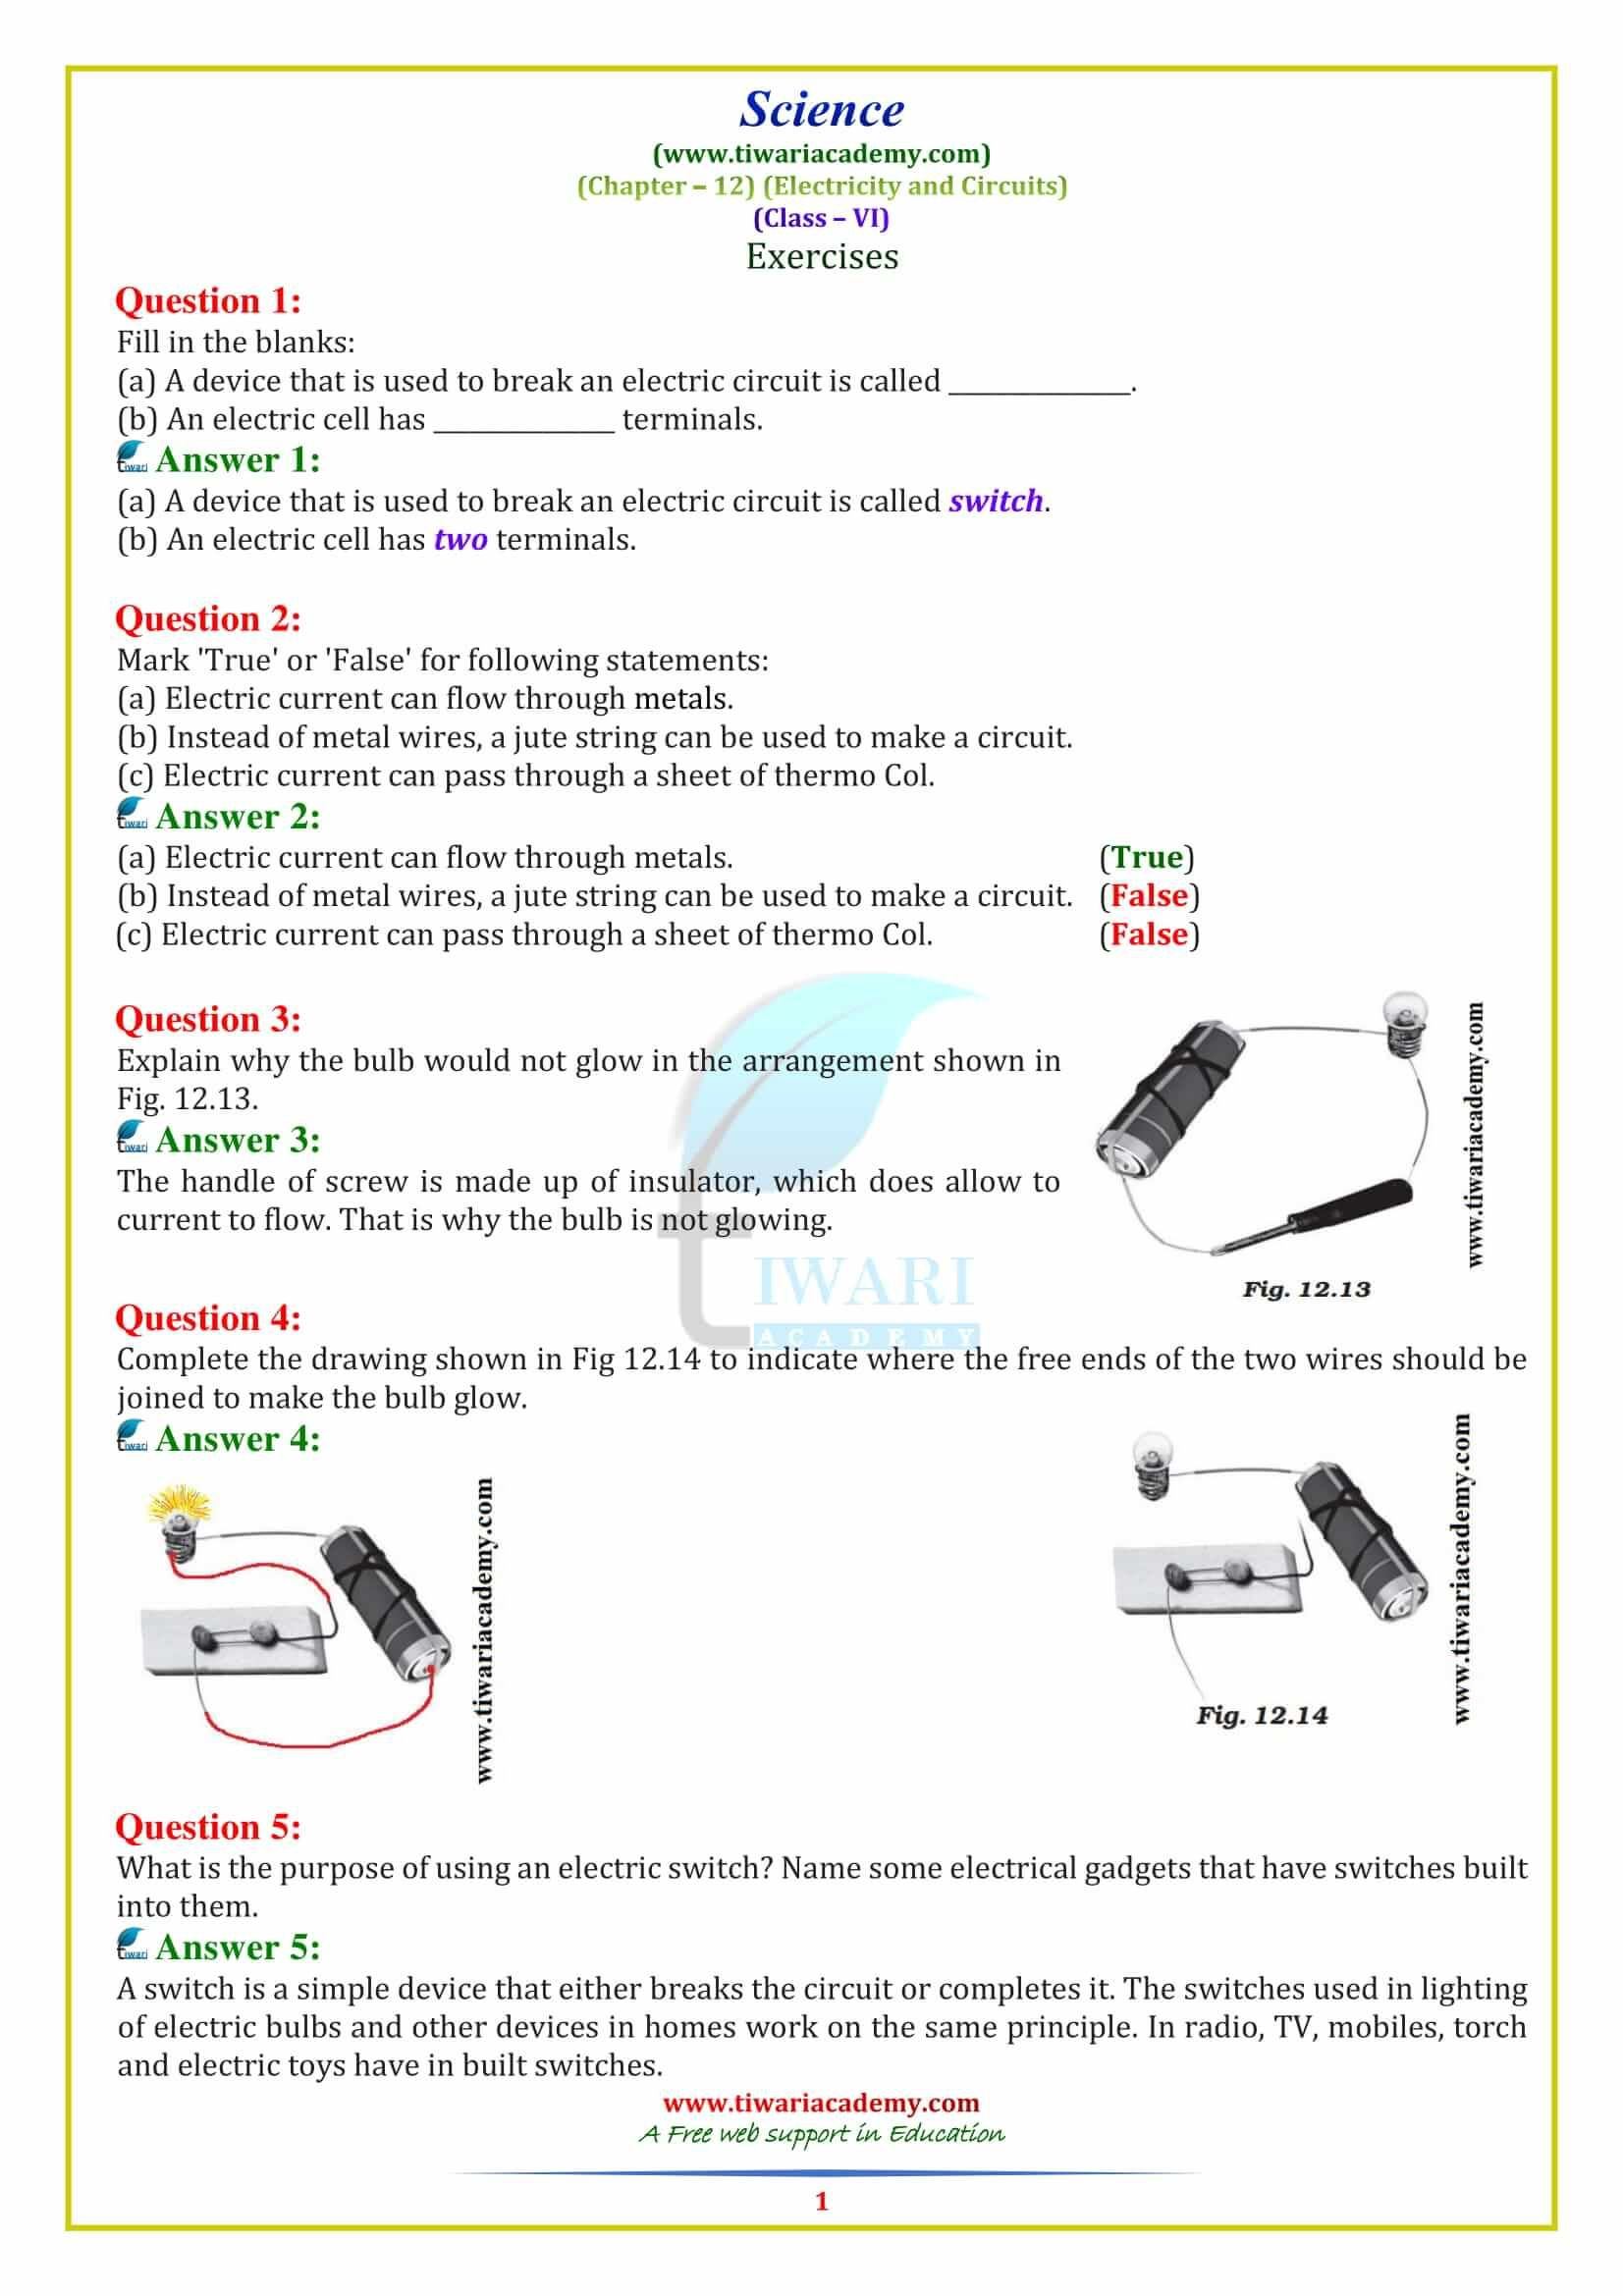 Download Ncert Solutions For Class 6 Science Updated For